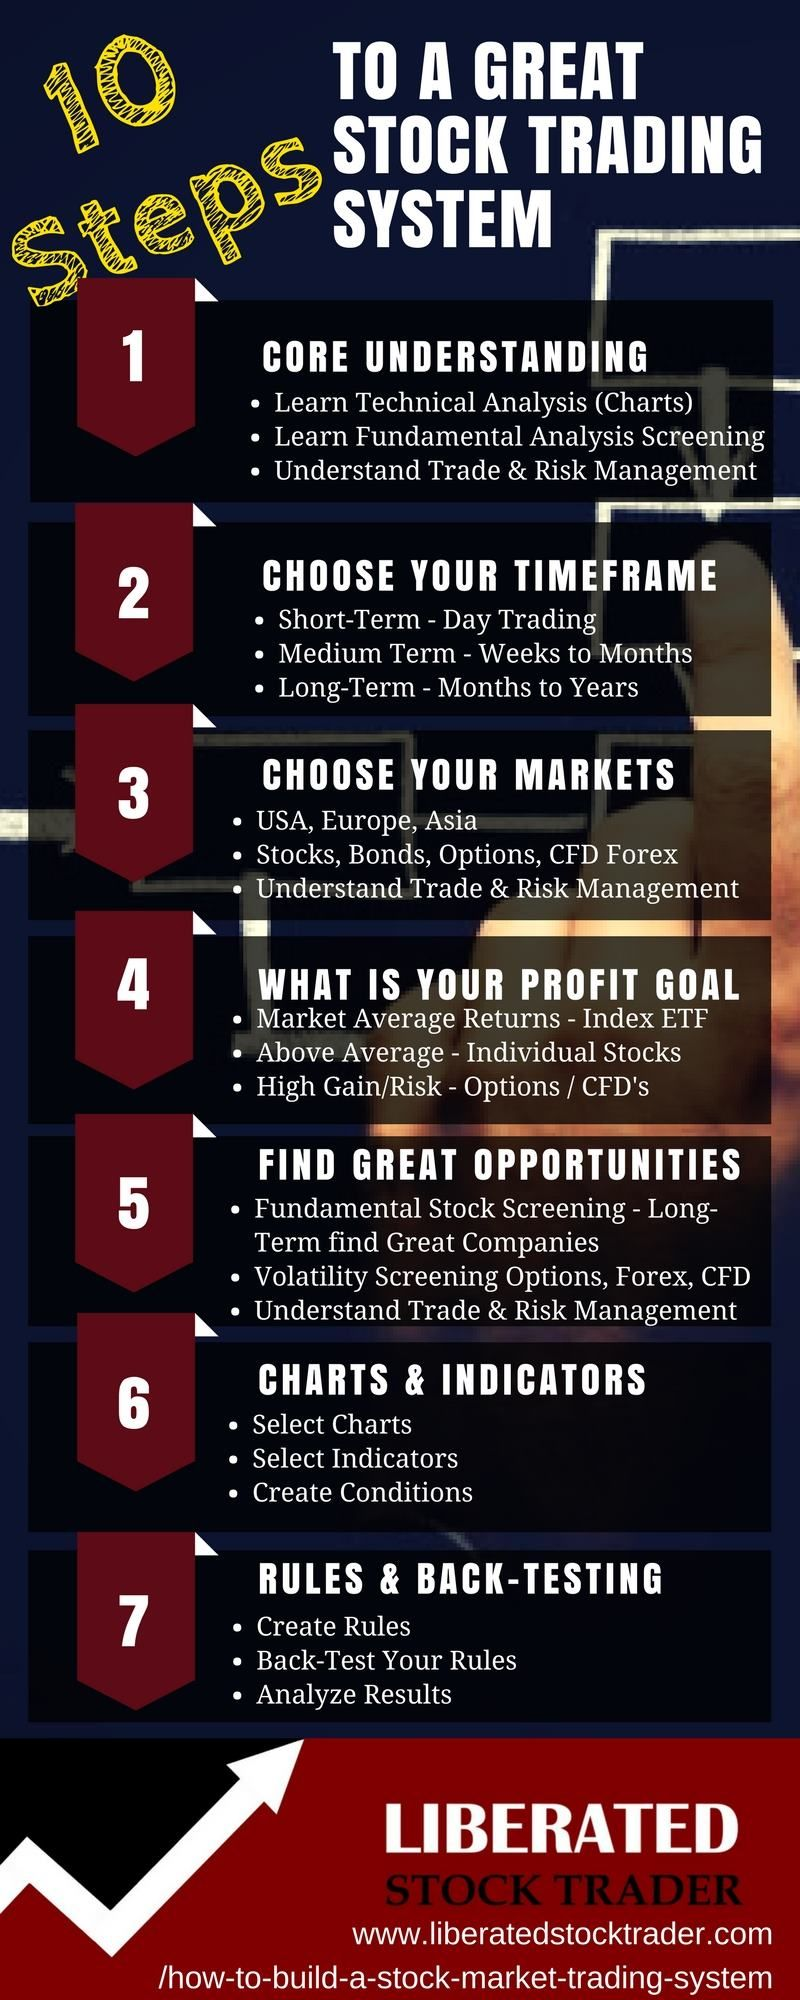 10 Step Stock Trading System Ful Steps To Building A Profitable Market Fundamental Technicals Backtesting